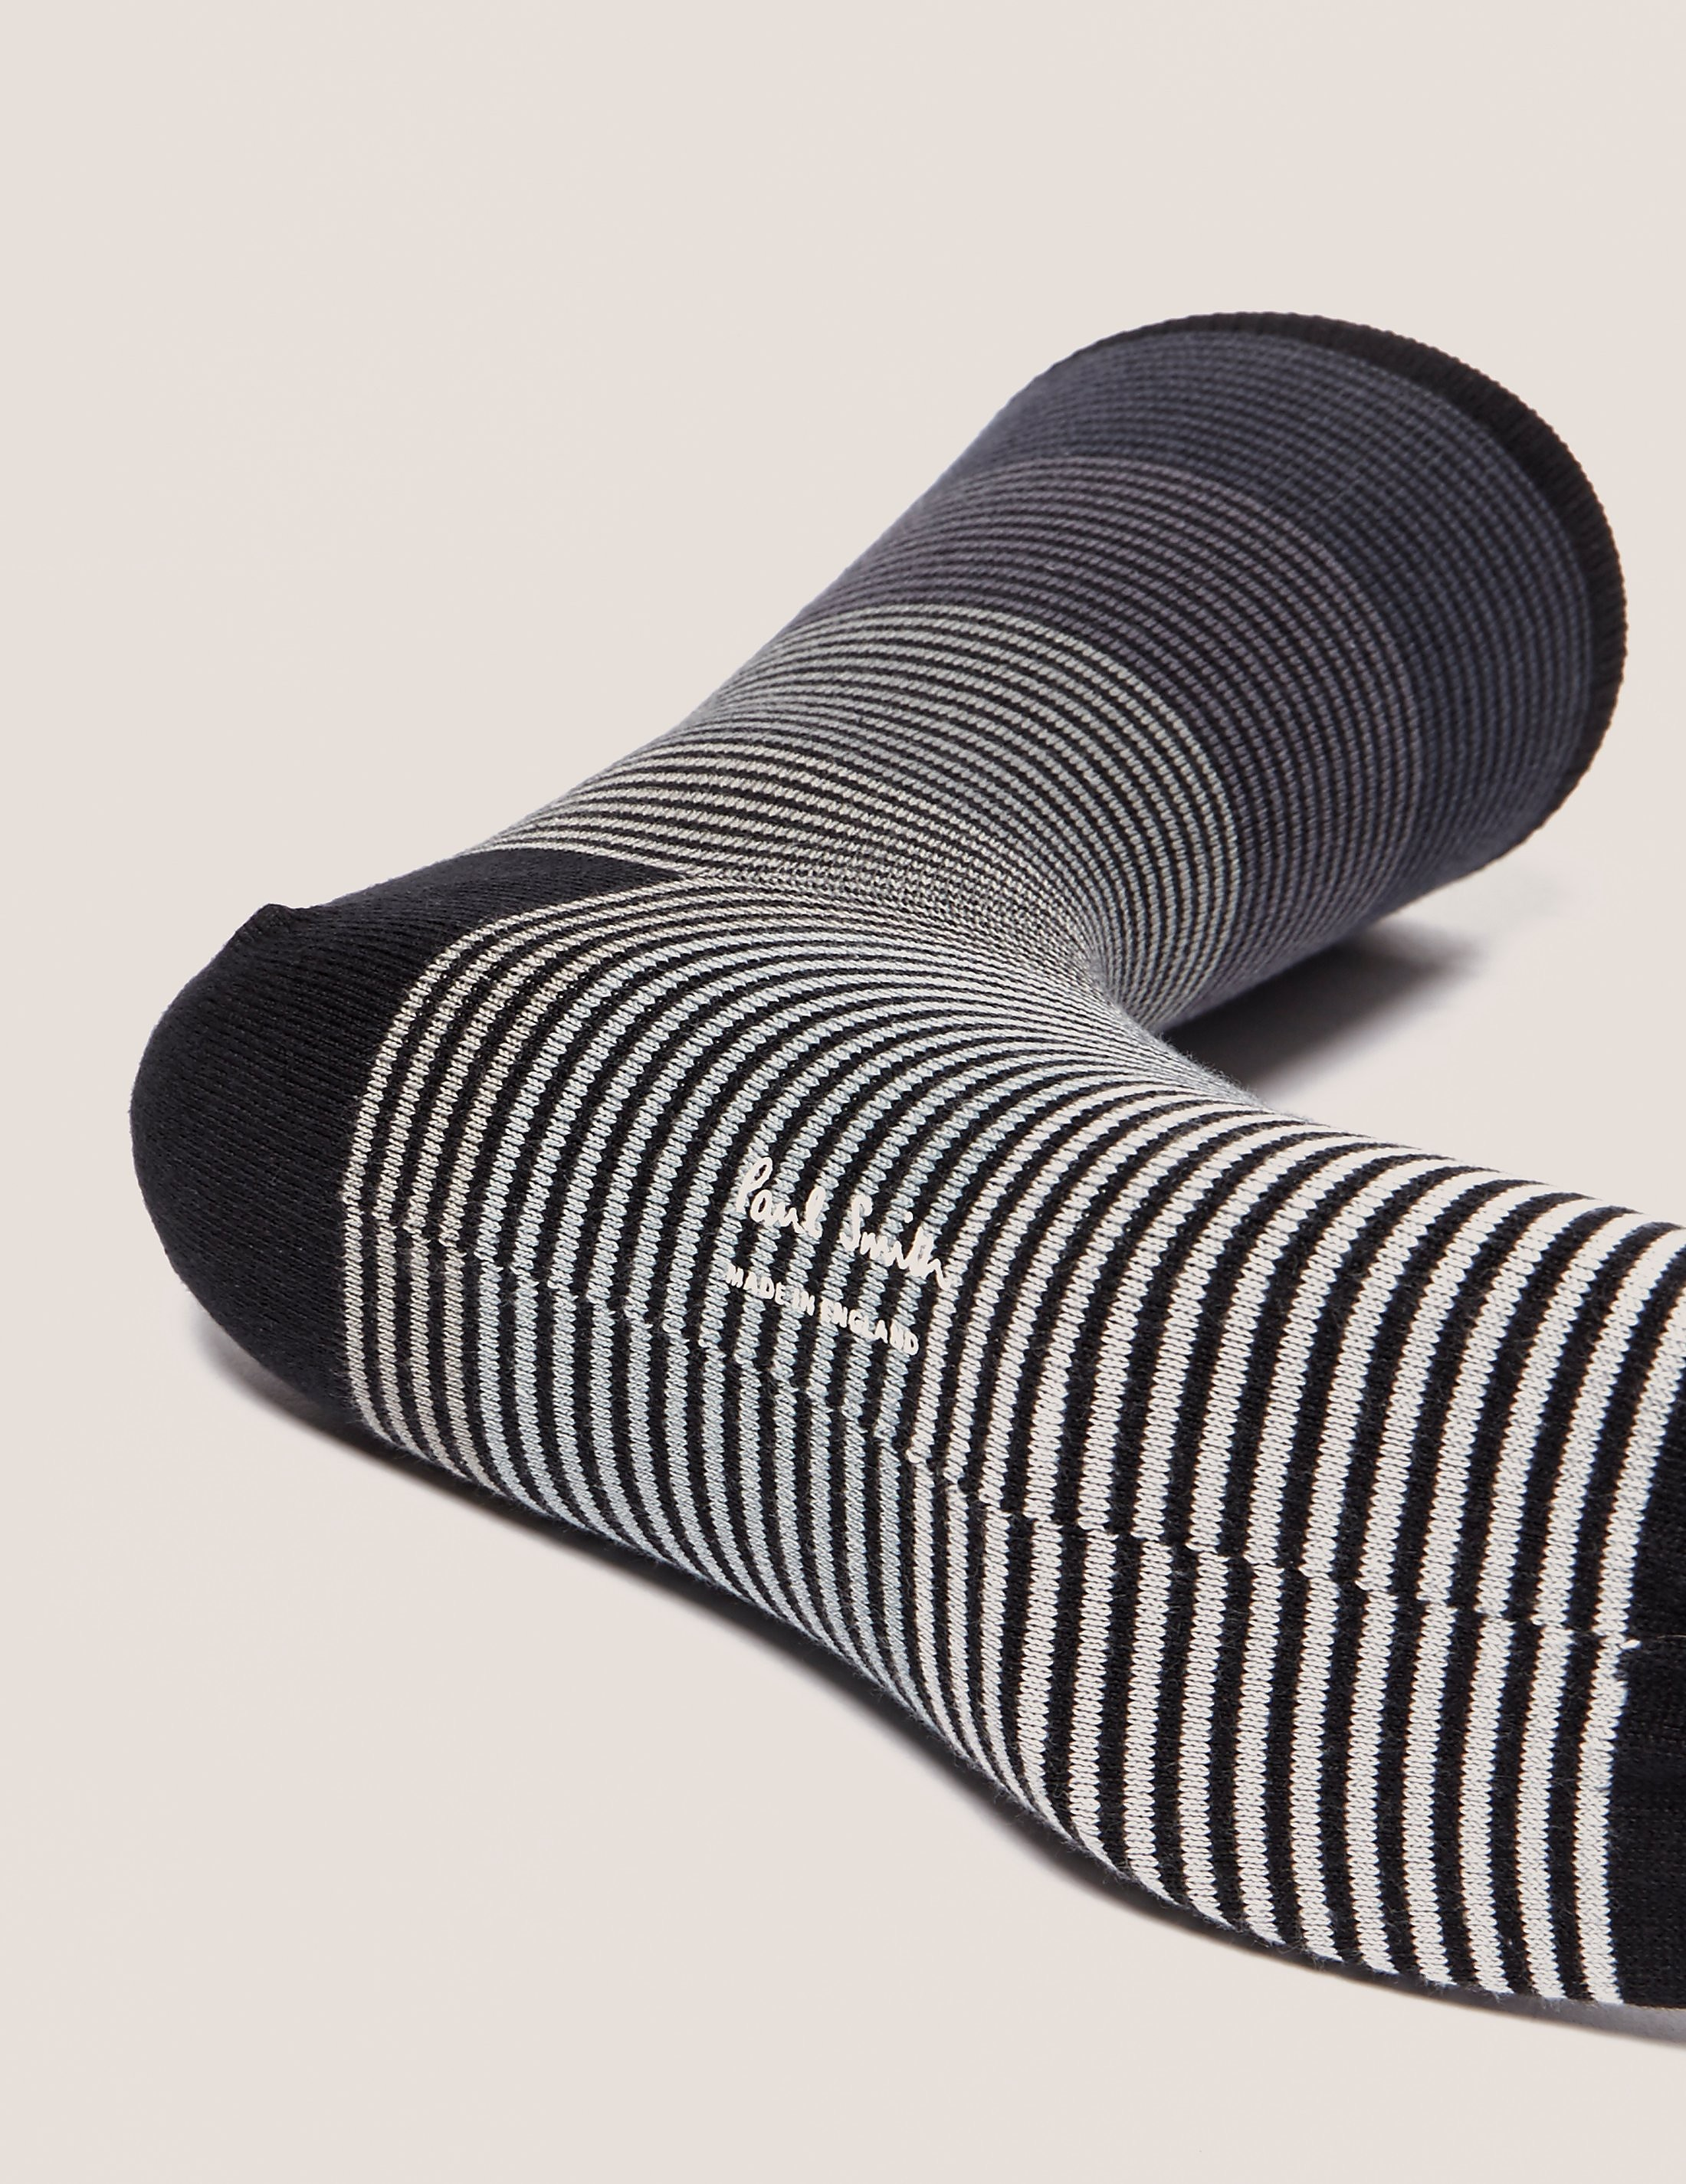 Paul Smith Graduation Stripe Socks